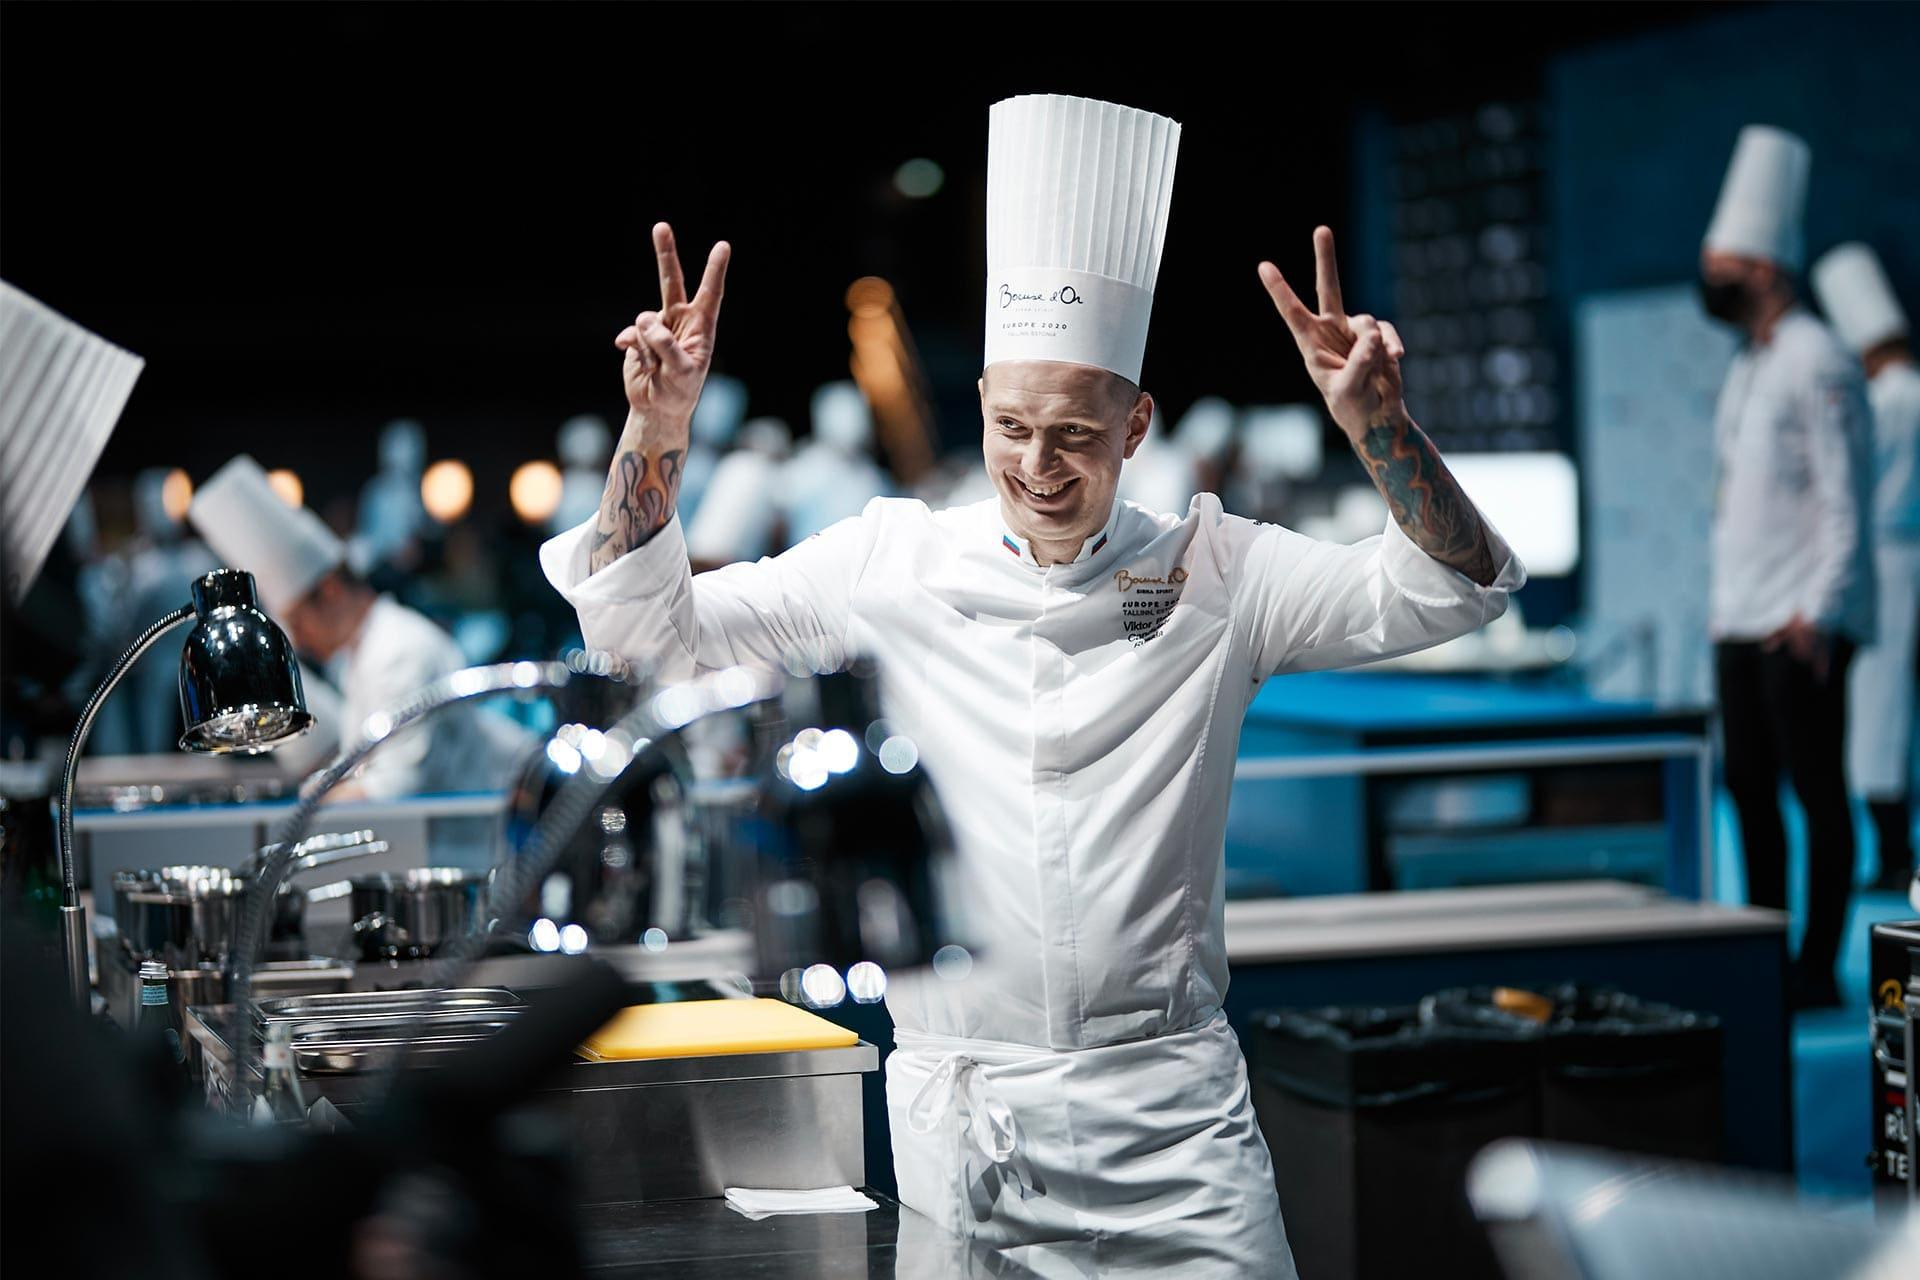 One of the chefs during the Bocuse d'Or 2020 Europe